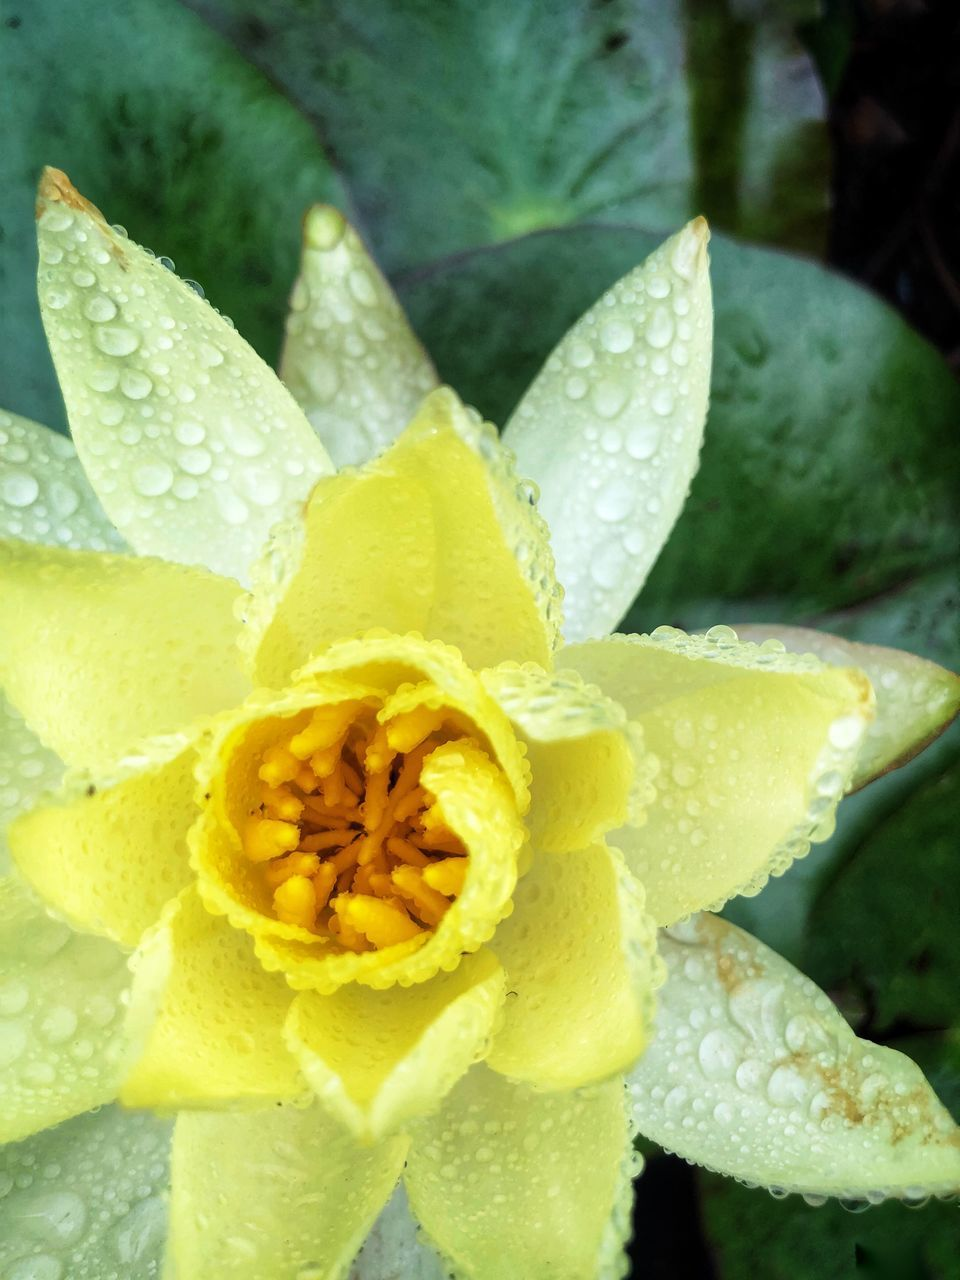 CLOSE-UP OF WATER DROPS ON YELLOW ROSE FLOWER